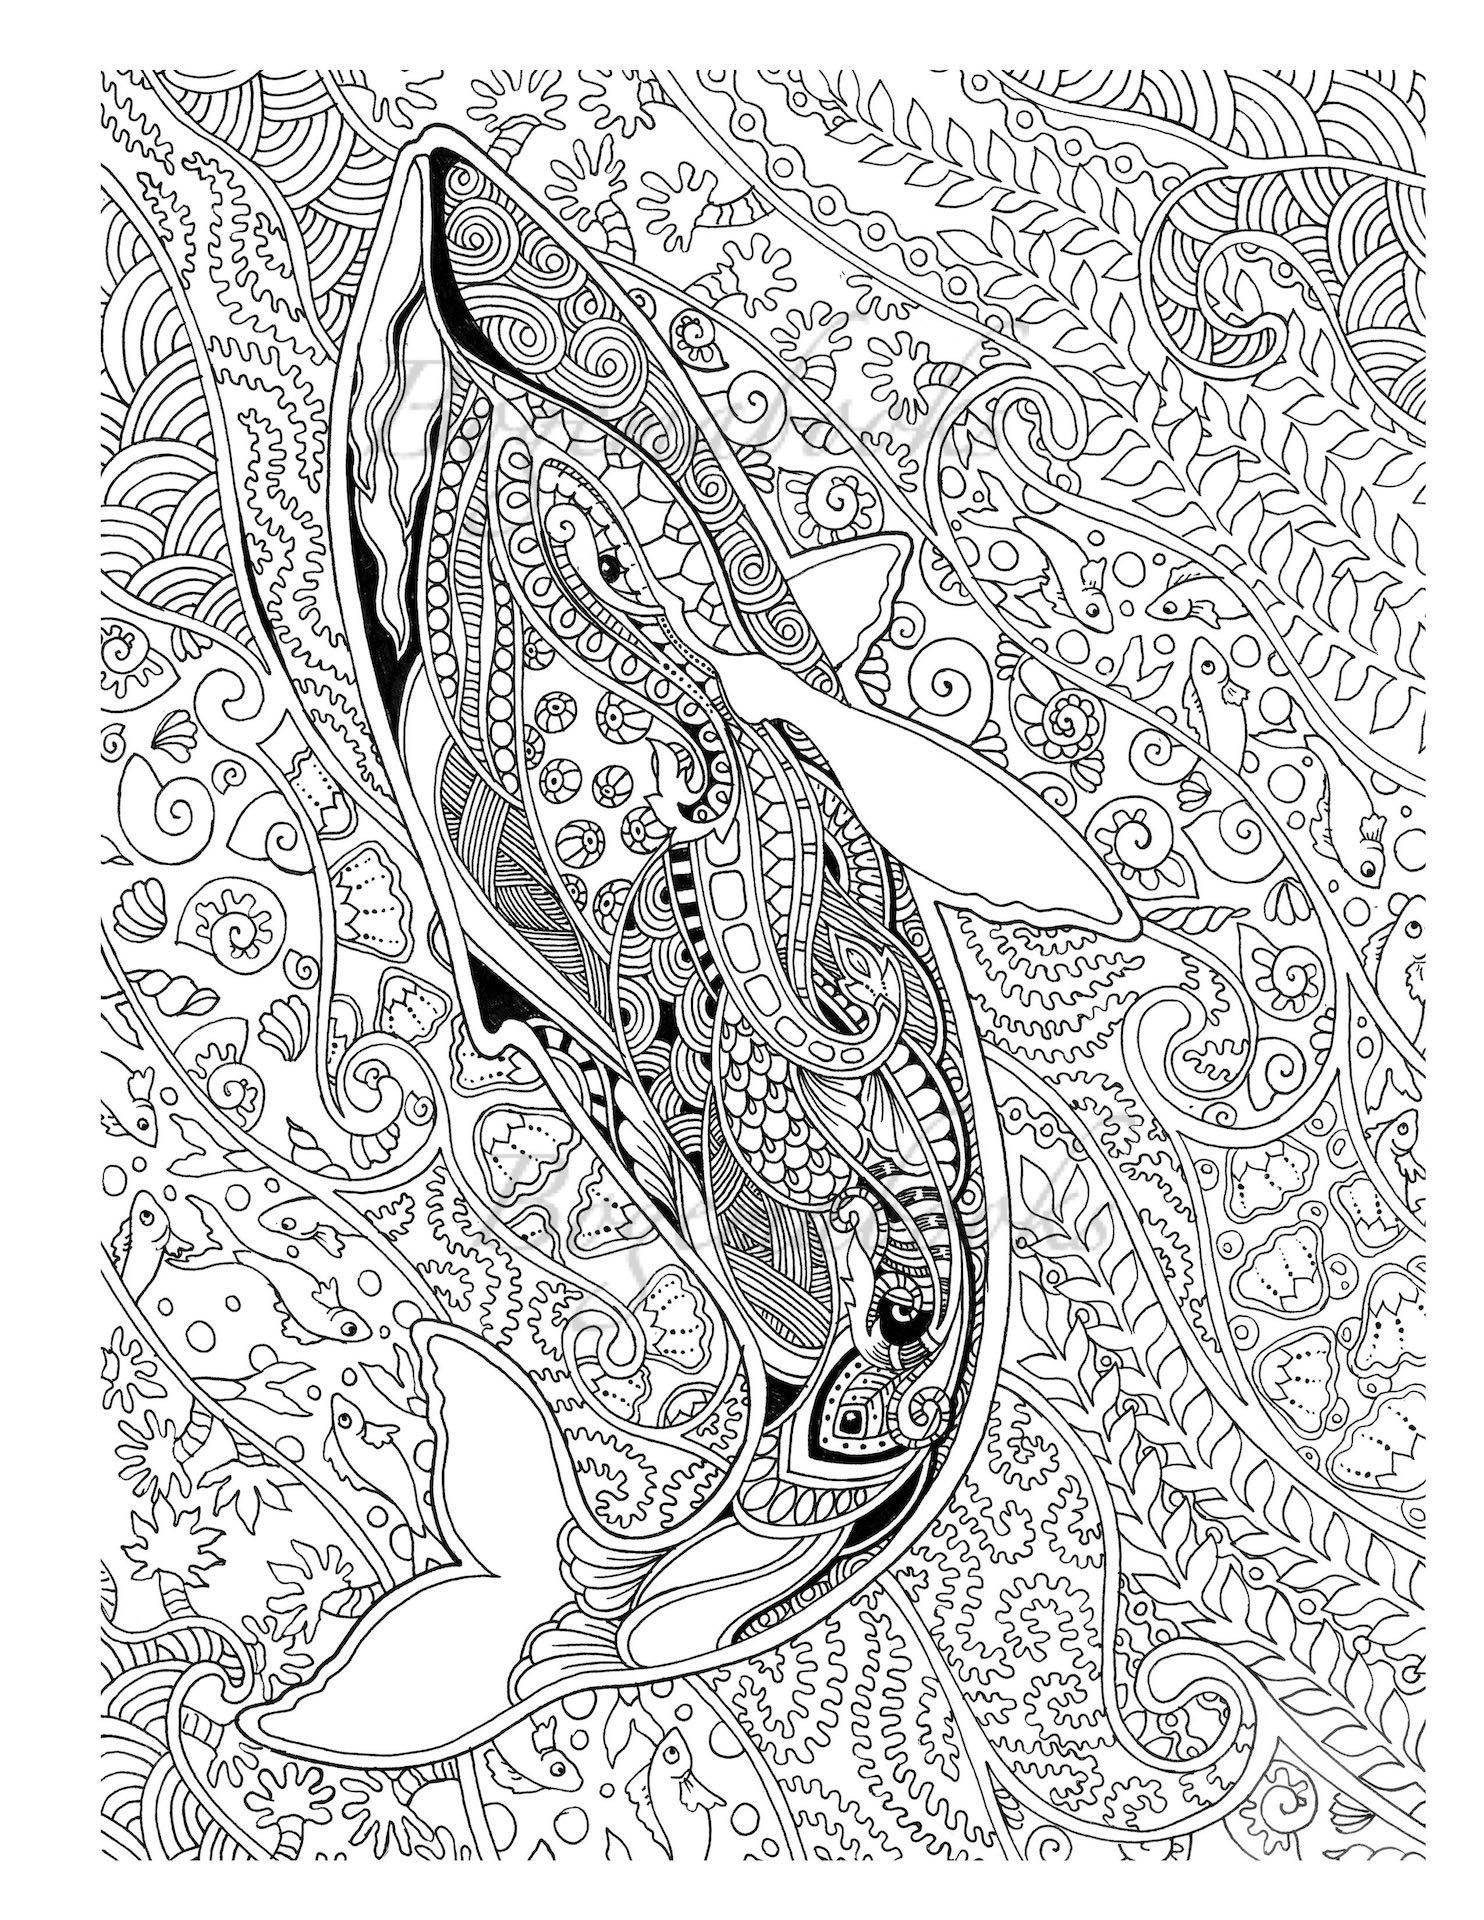 relaxation animal coloring pages awesome animals adult coloring book coloring pages pdf pages coloring relaxation animal